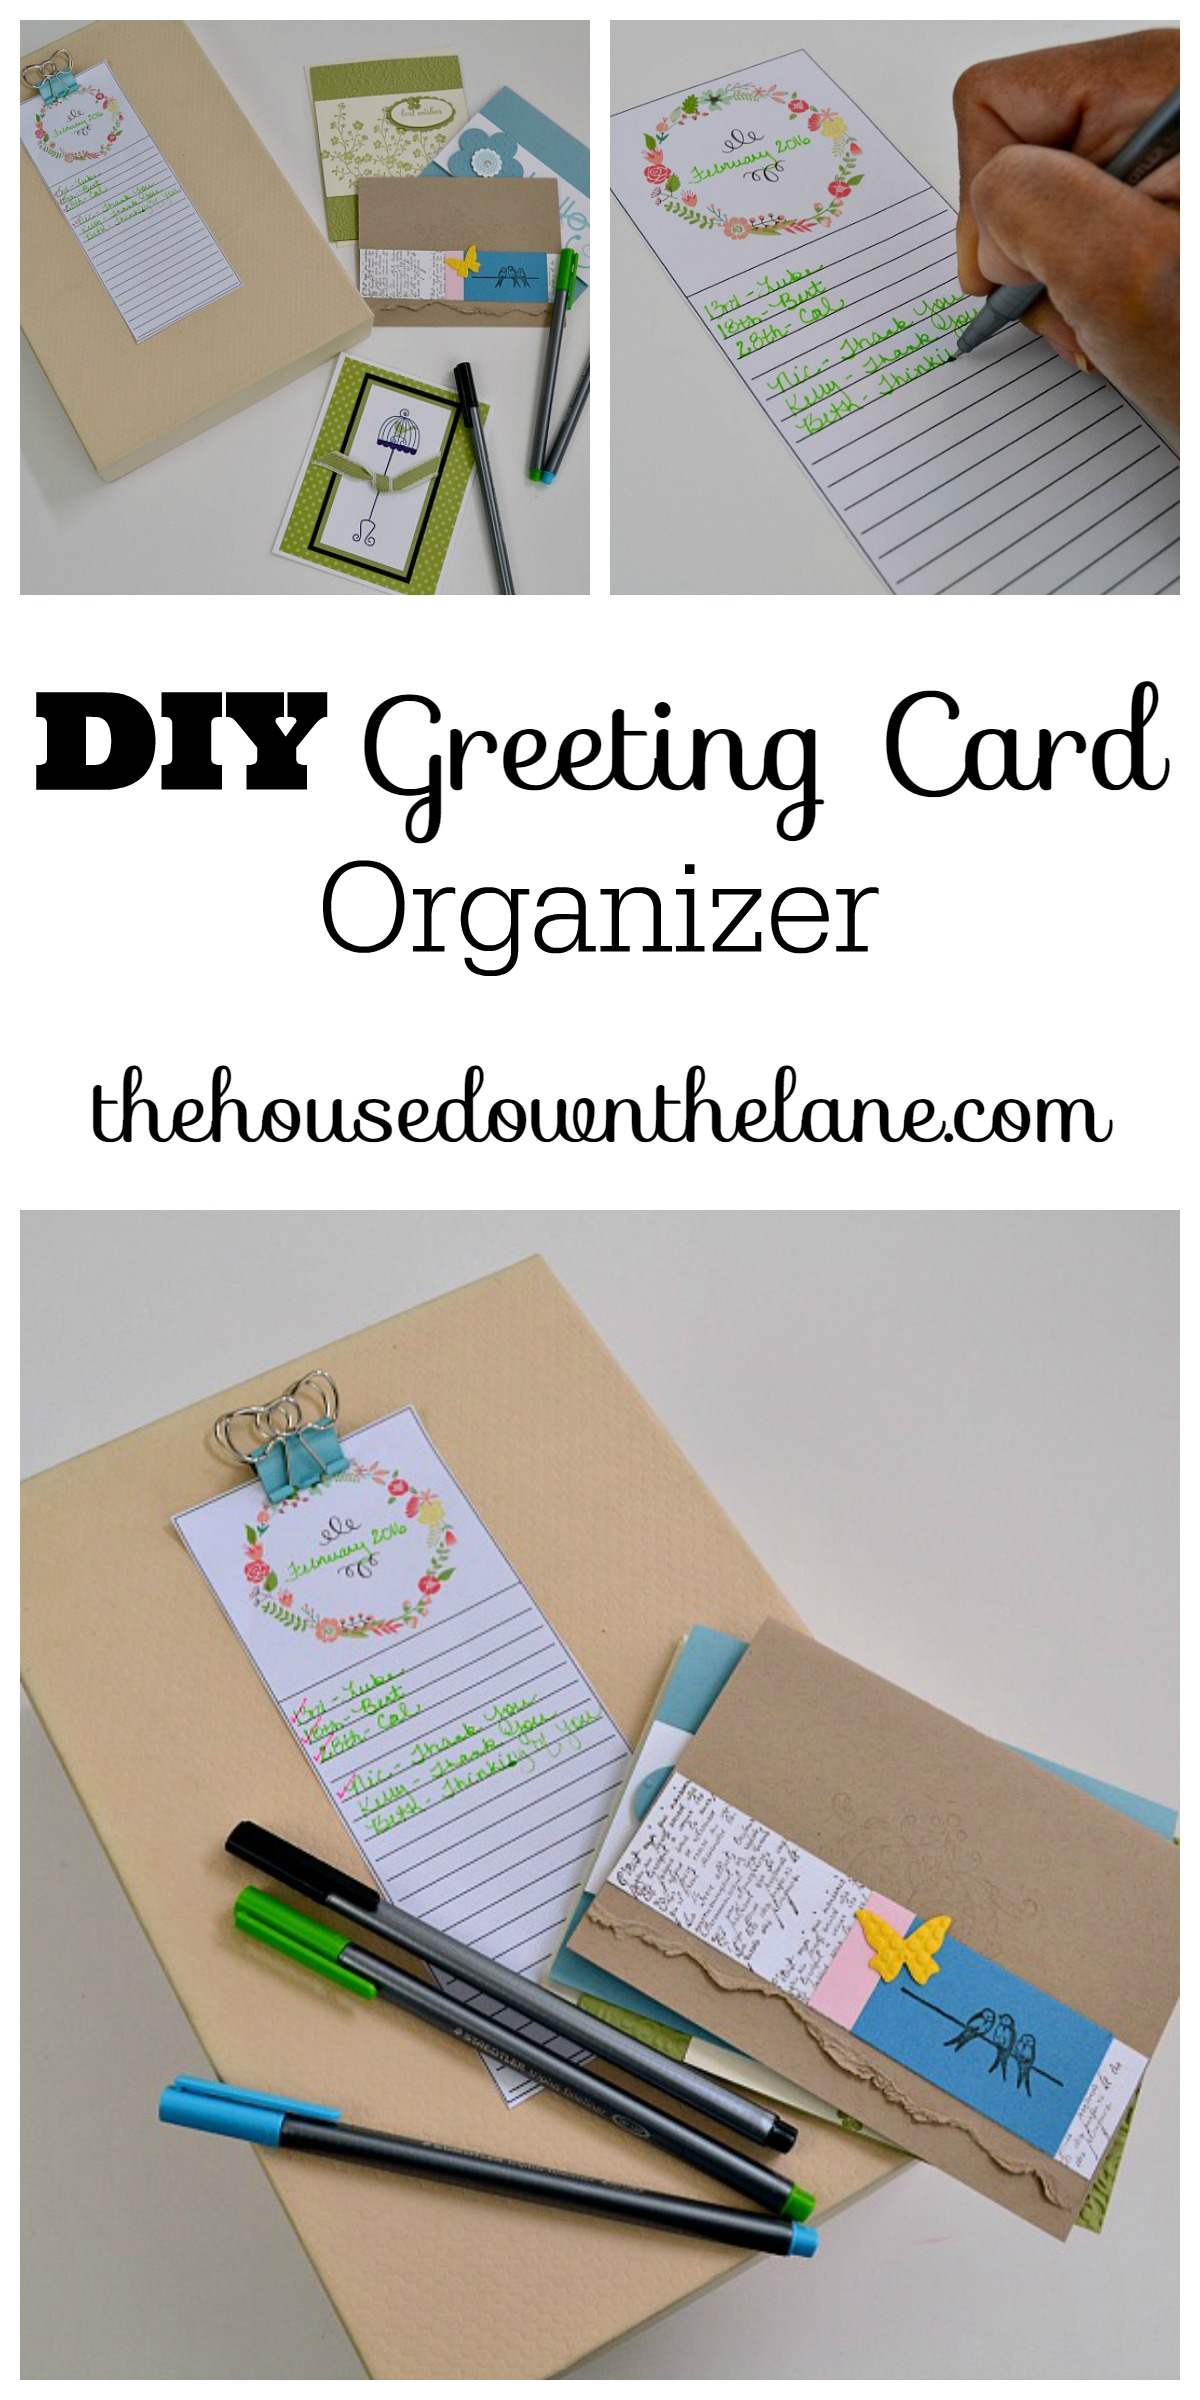 Diy greeting card organizer calyx corolla learn how to make a diy greeting card organizer and why handwriting letters is so important m4hsunfo